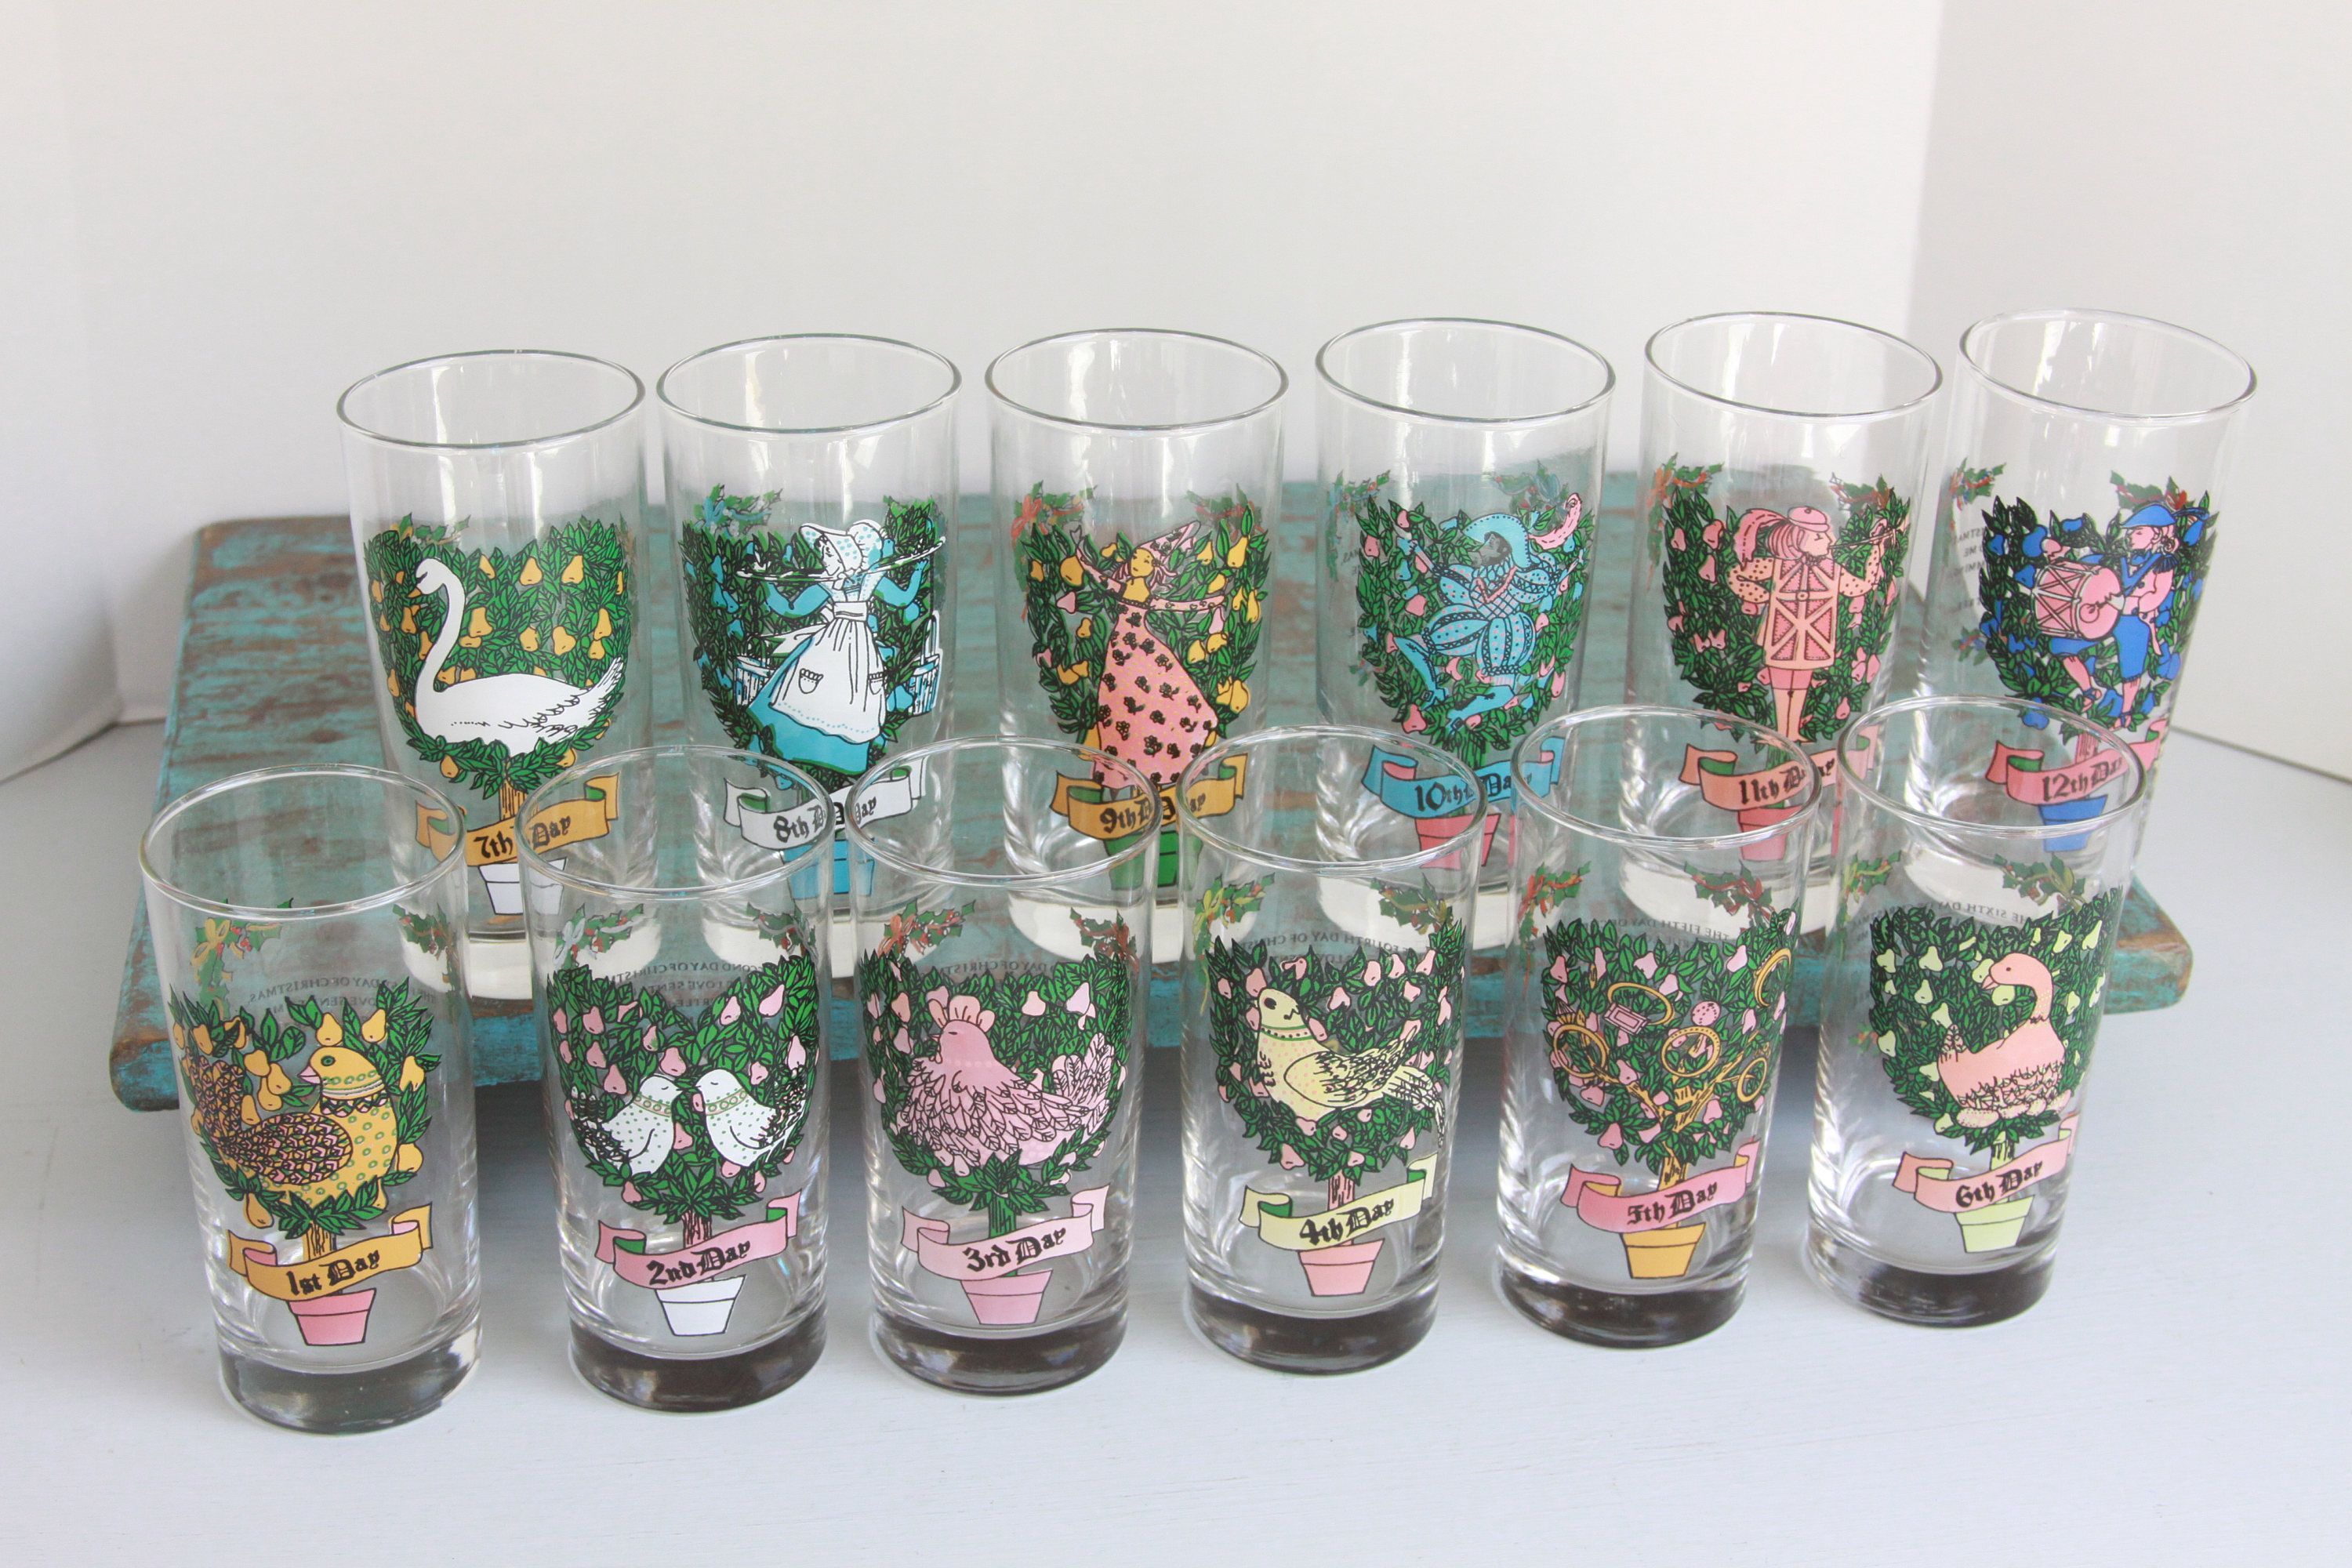 vintage 12 days of christmas glasses in original box american glass by indiana glass